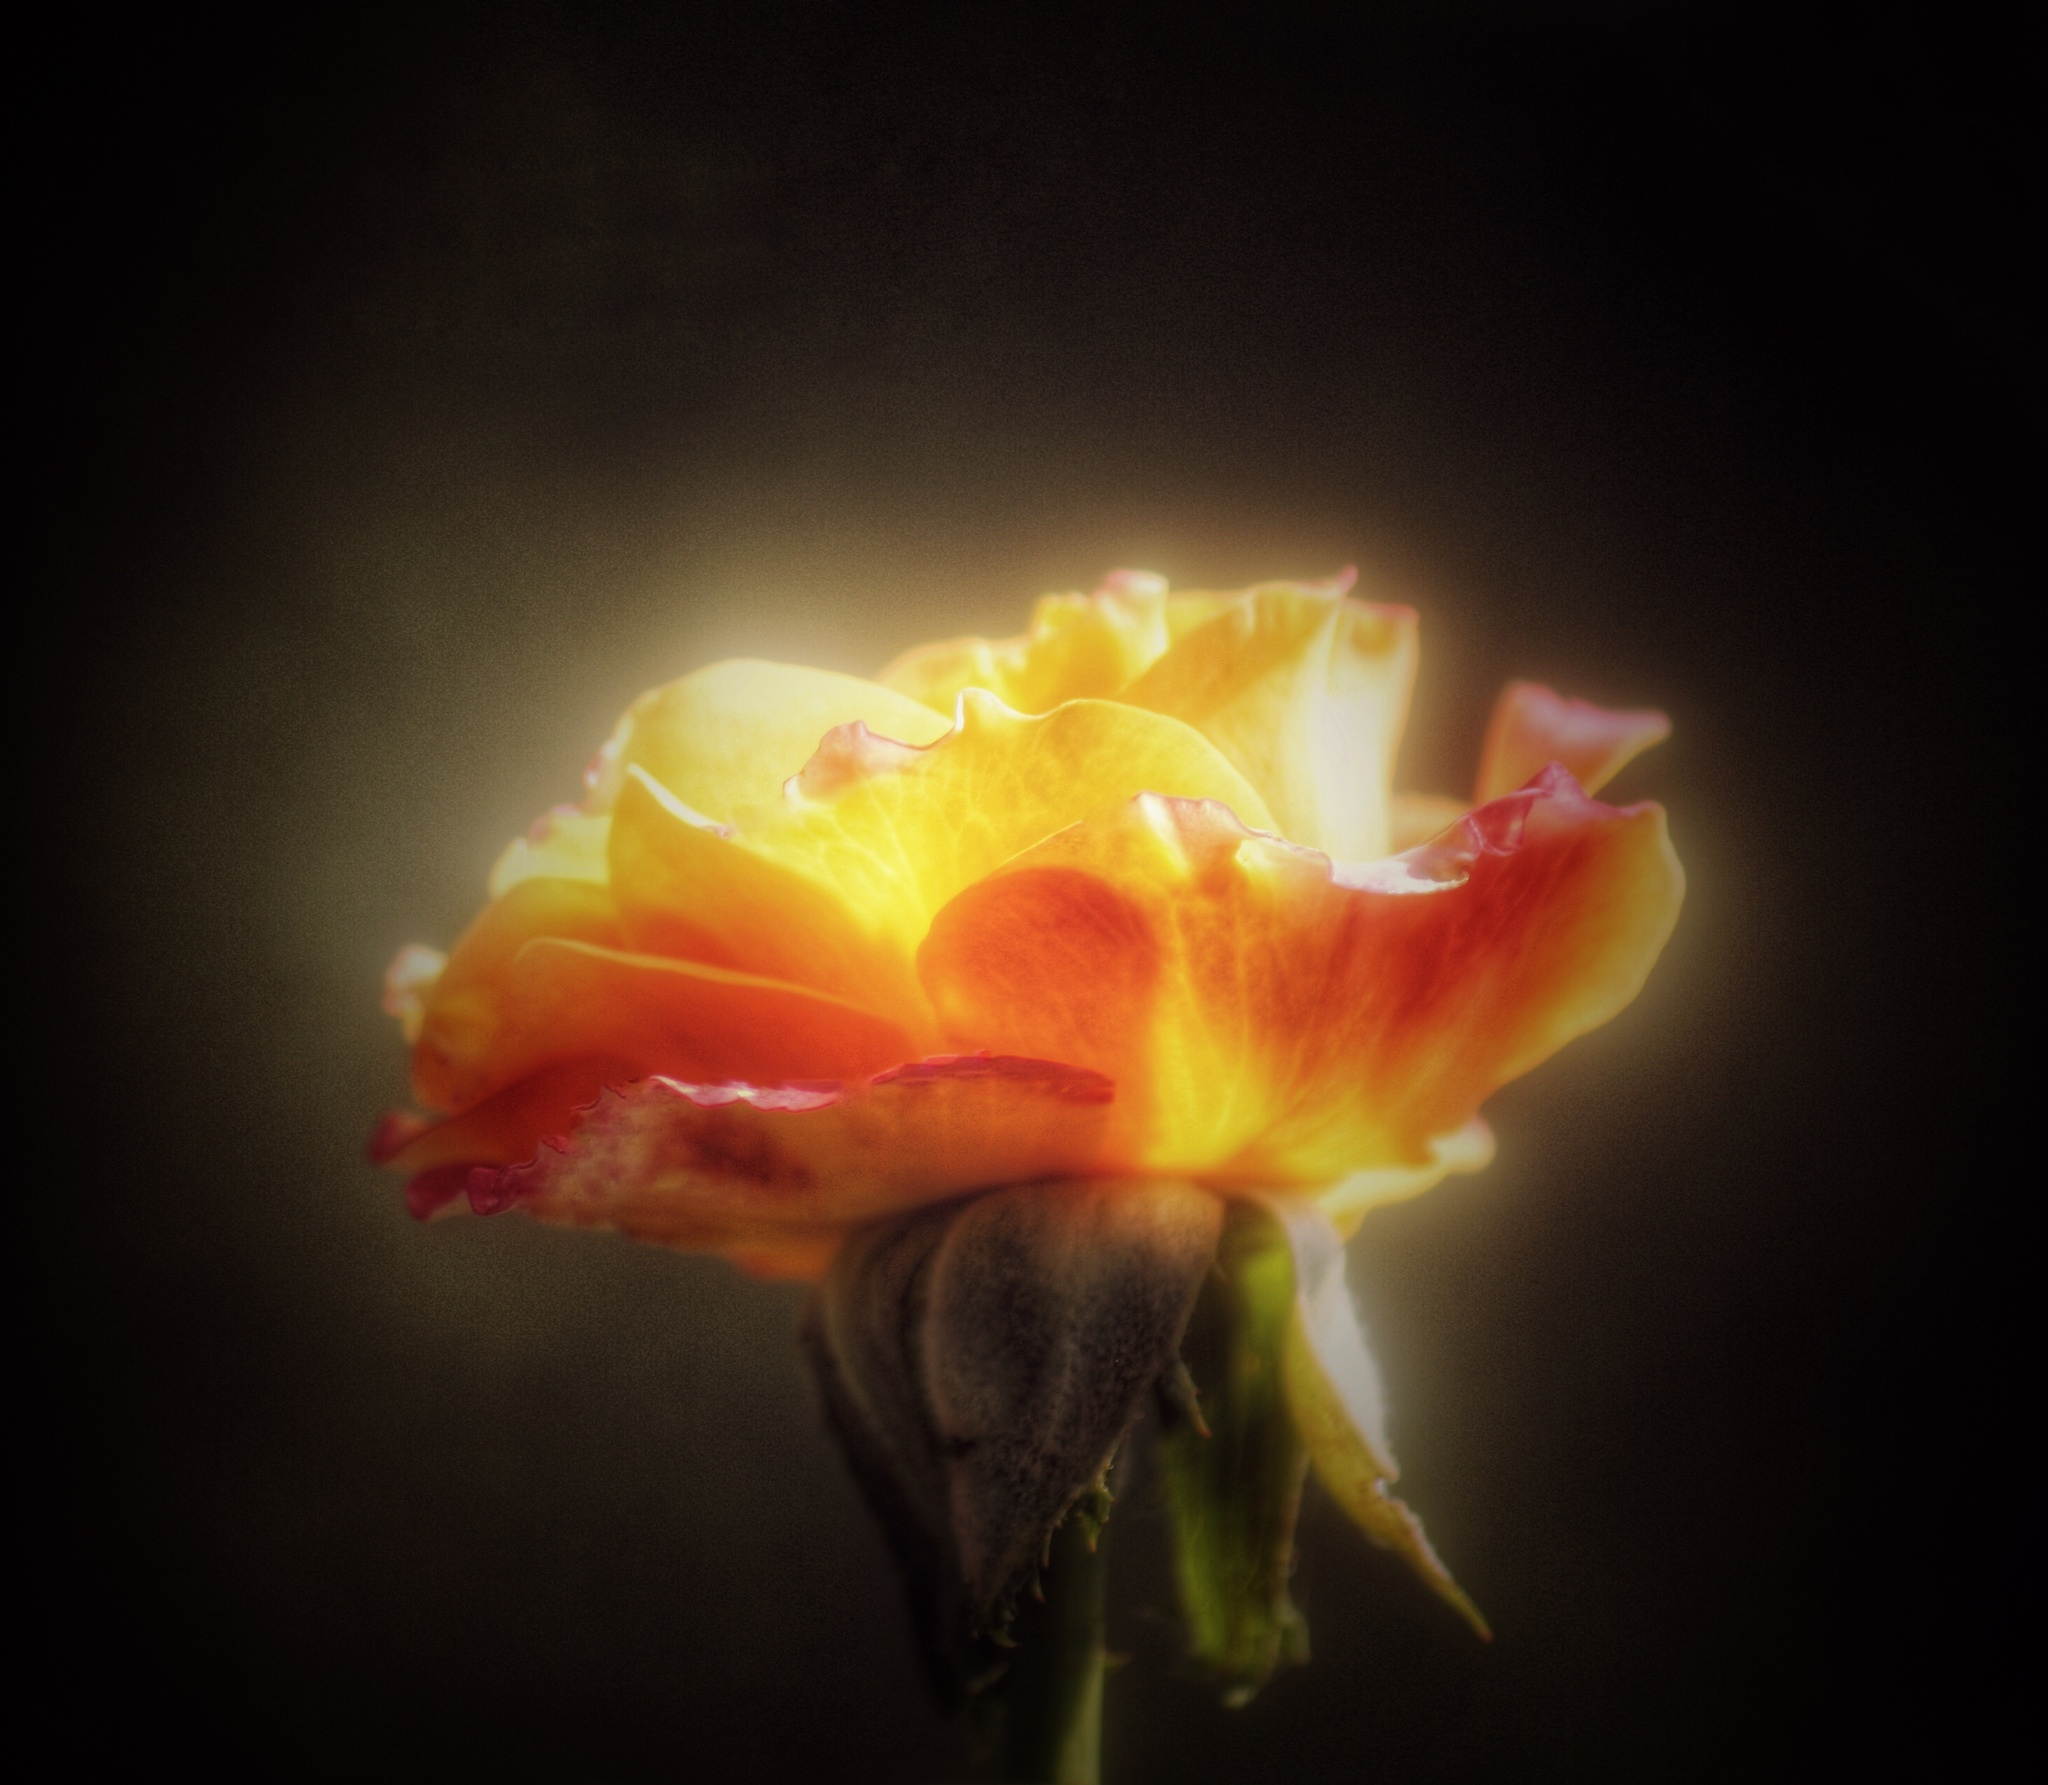 Glowing rose by amy.conger.9